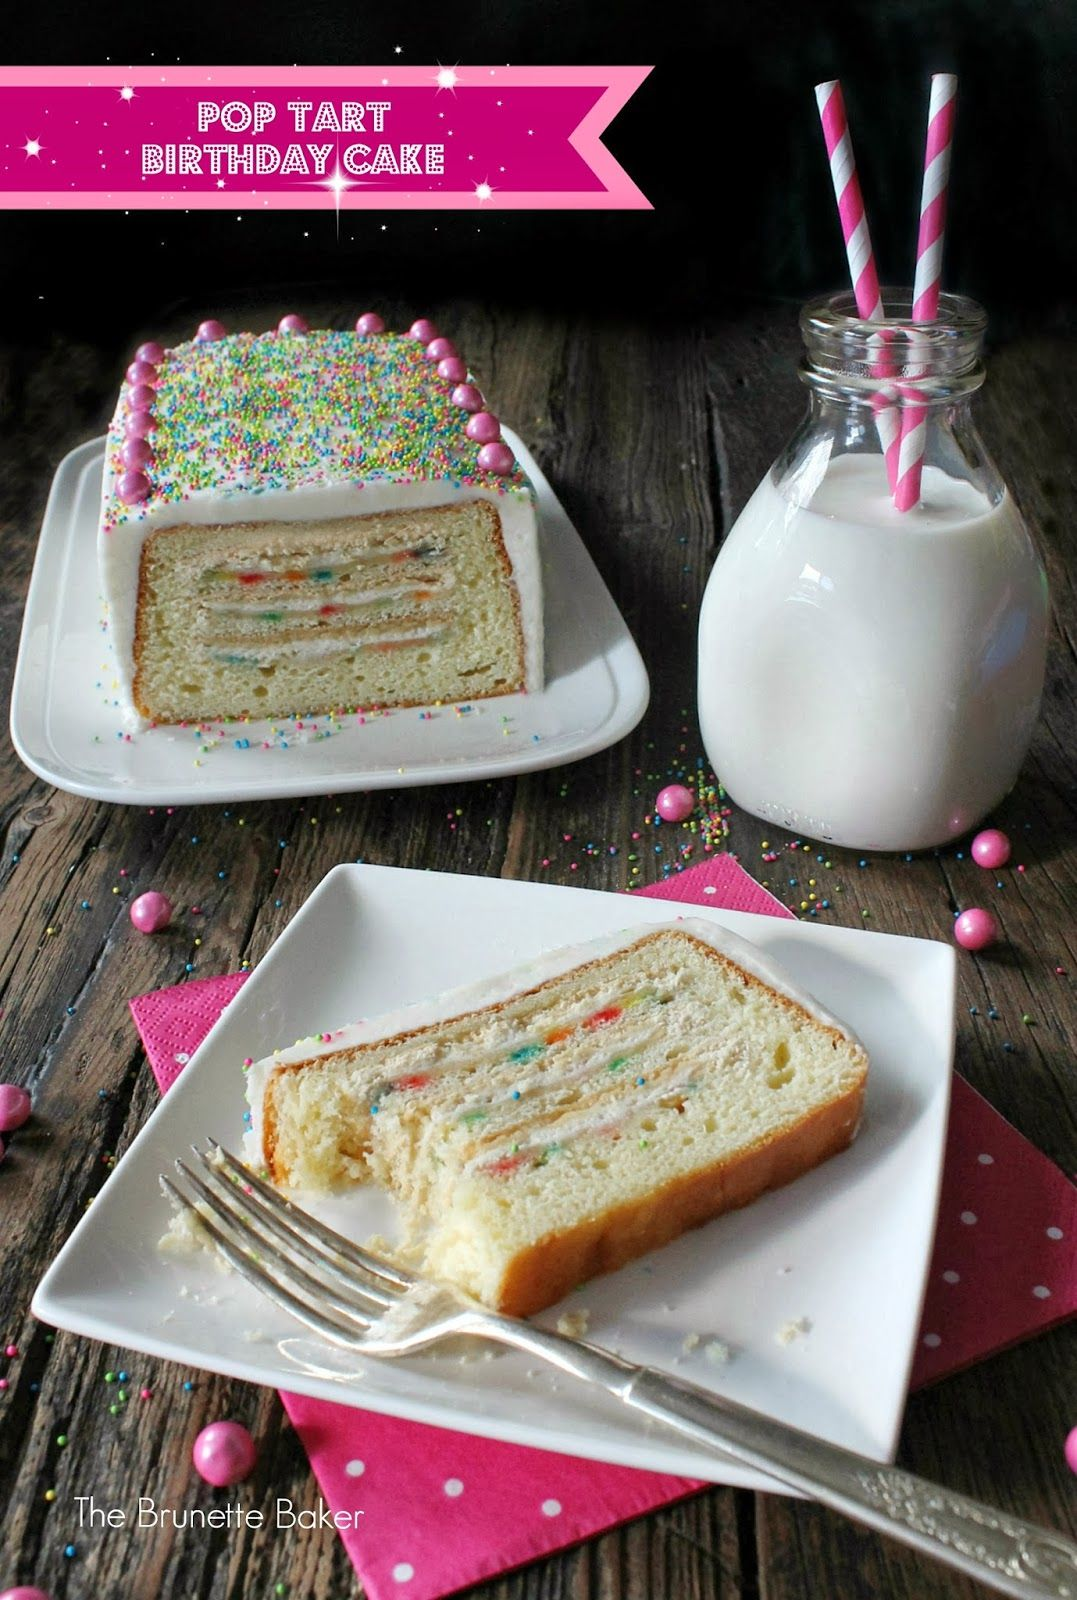 The Brunette Baker Pop Tart Birthday Cake